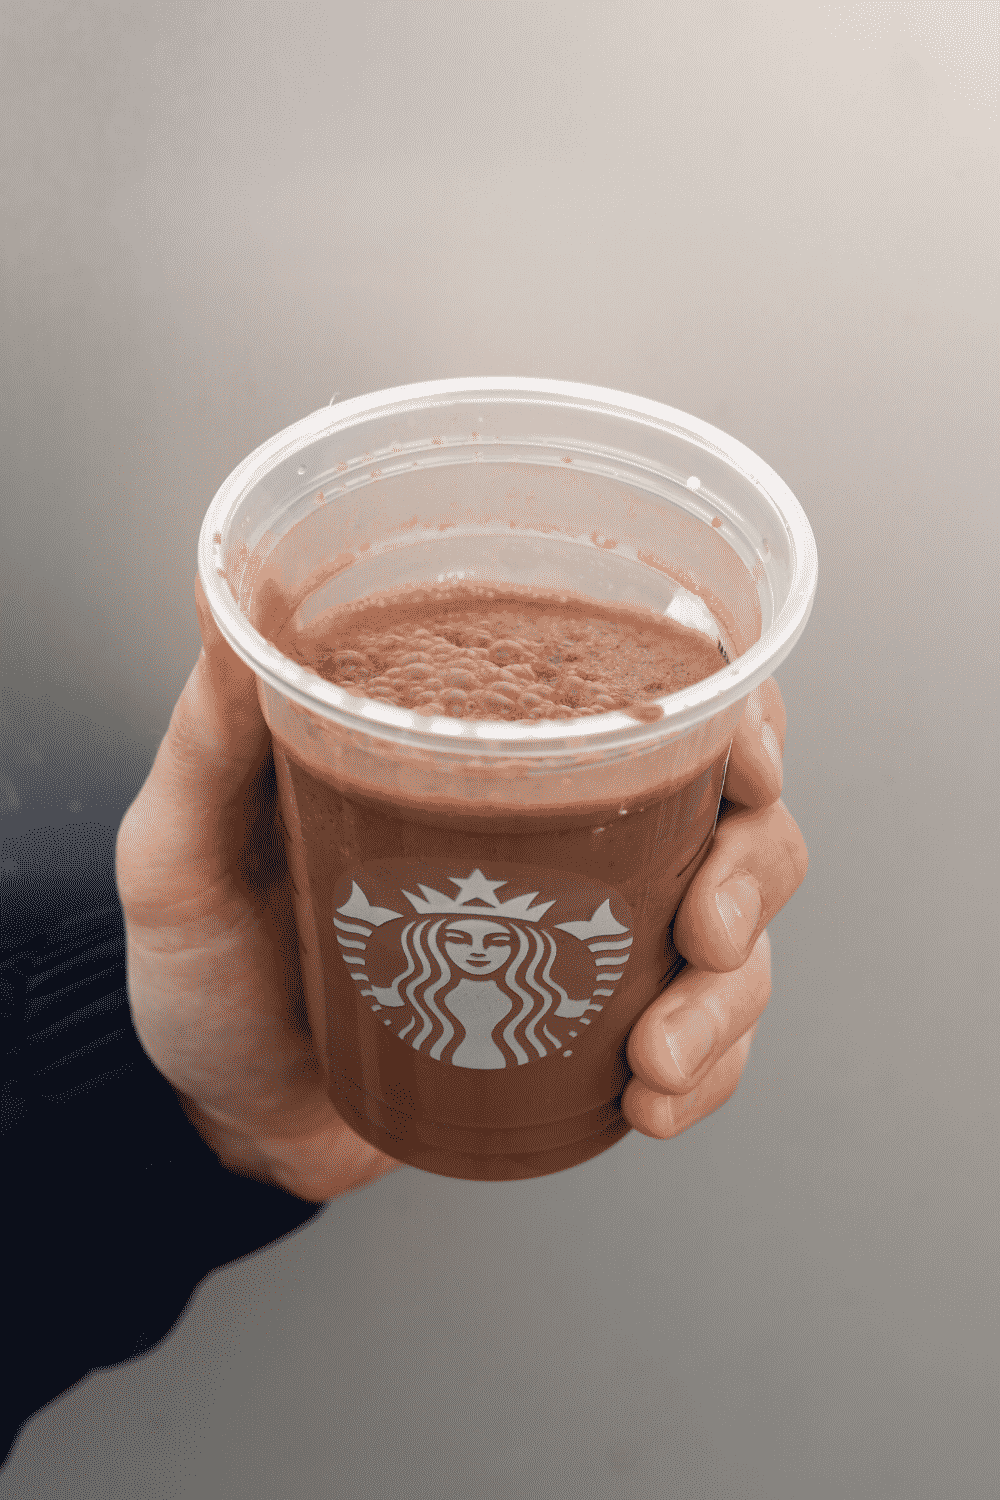 A hand holding a cup of Starbucks vegan mocha Frappuccino.